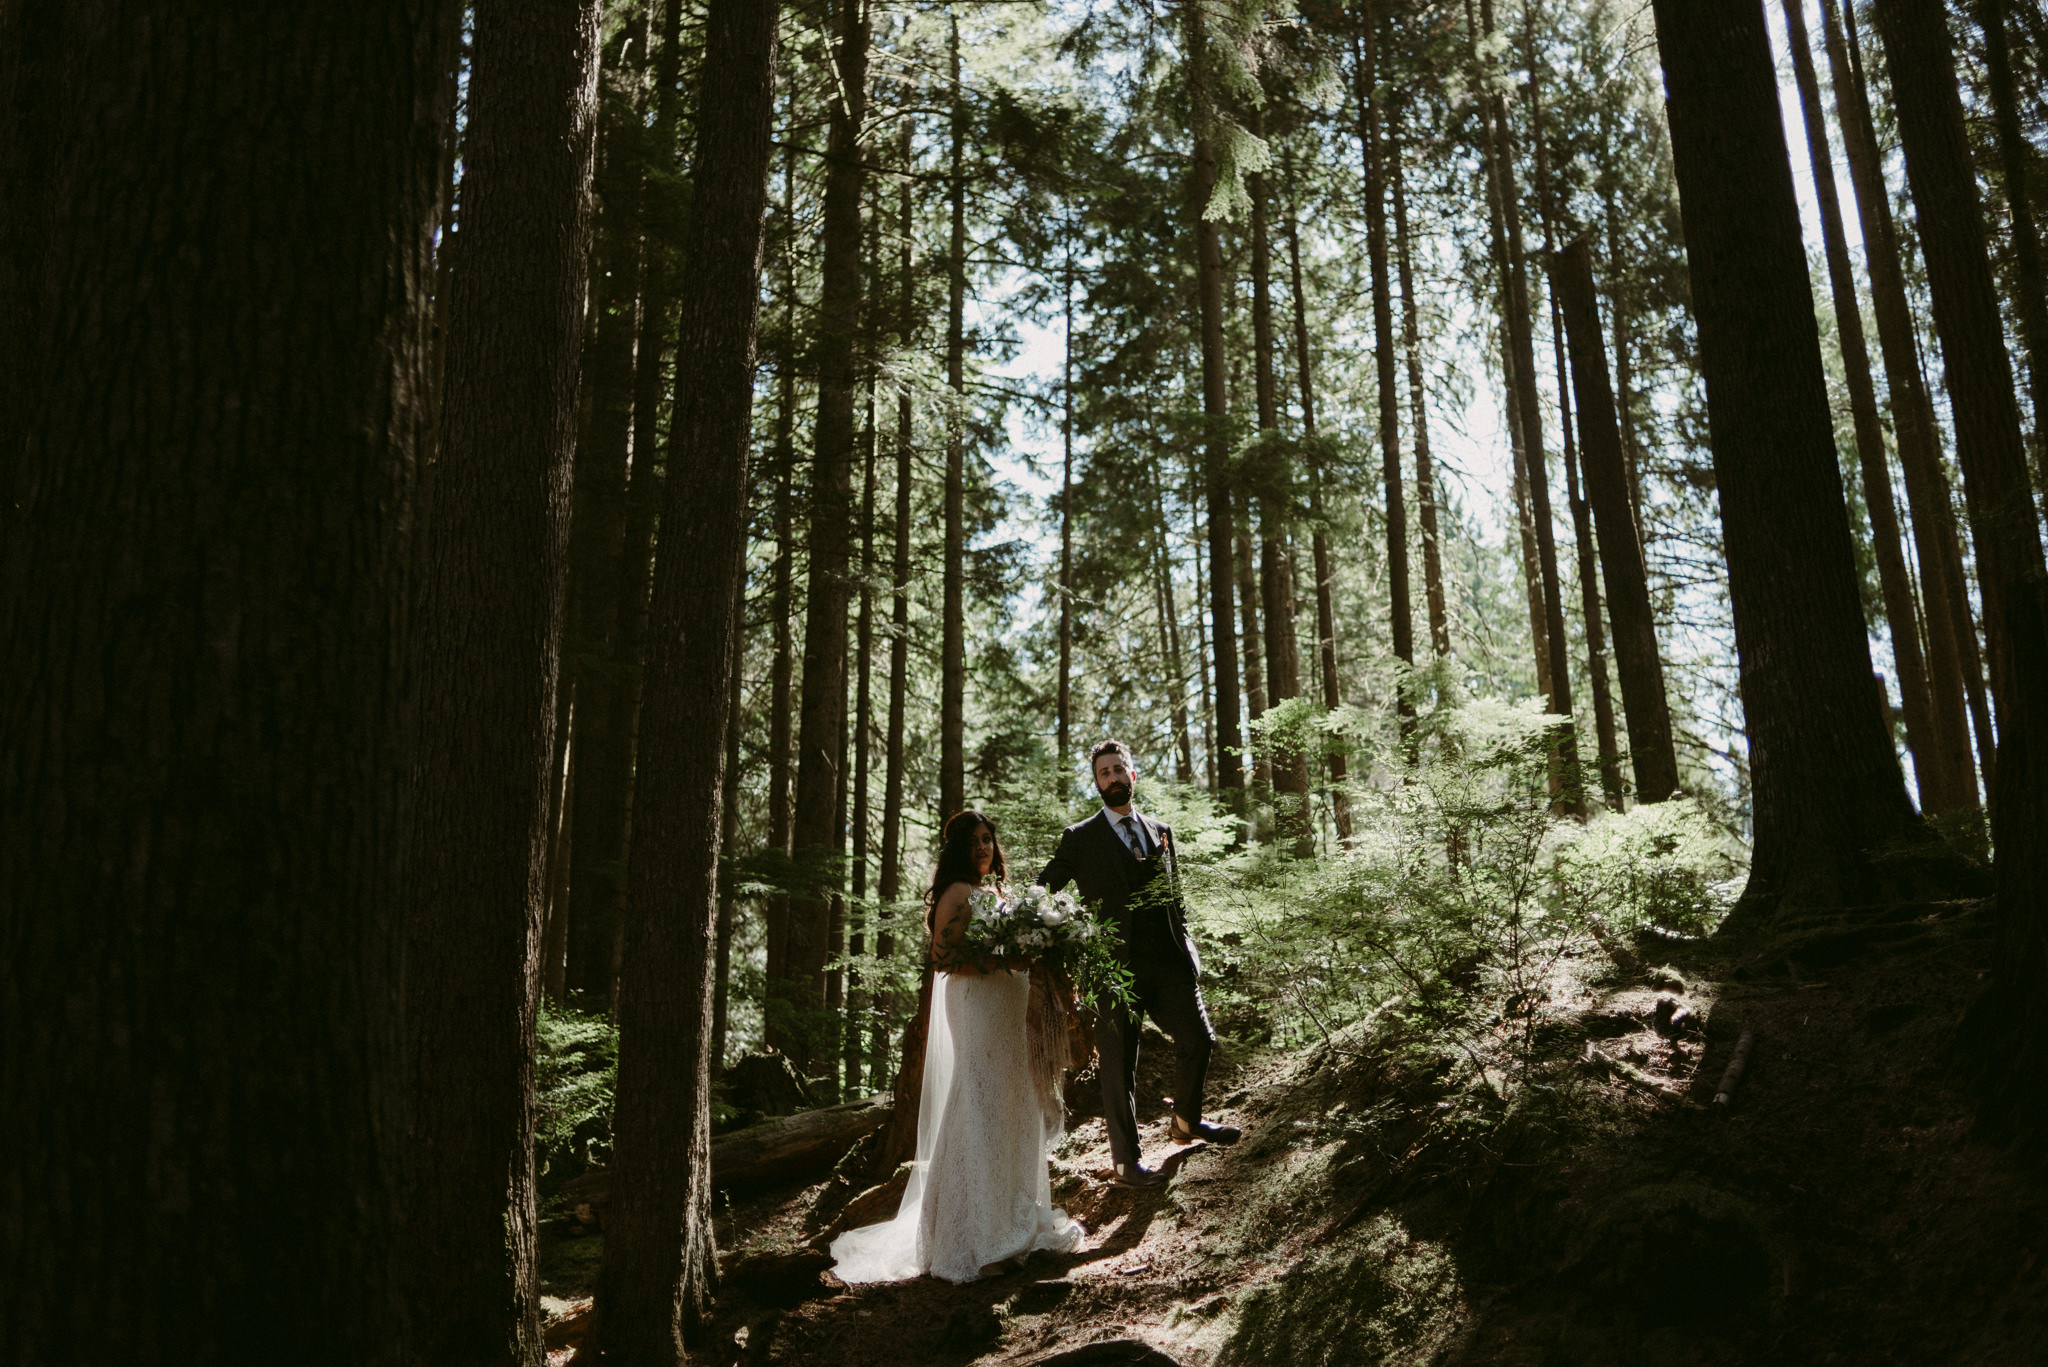 bride and groom standing in light in forest of tall pines